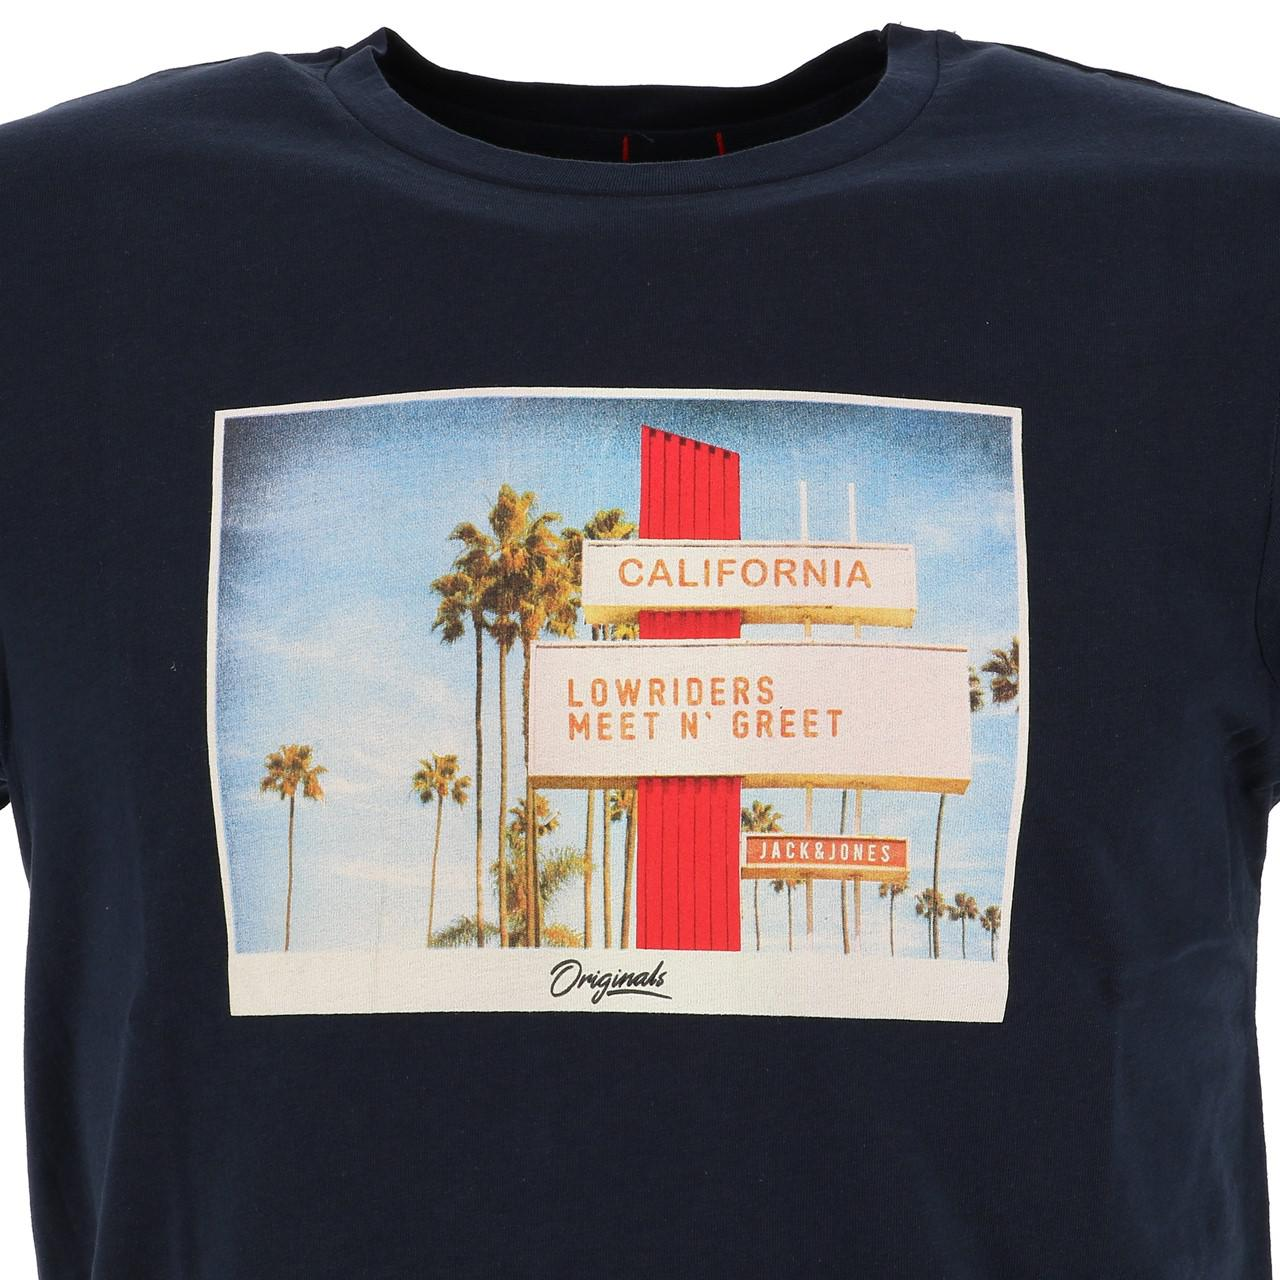 Short-Jack-and-jones-Hotel-Total-Eclipse-Tee-Blue-18535-Does-Not thumbnail 2